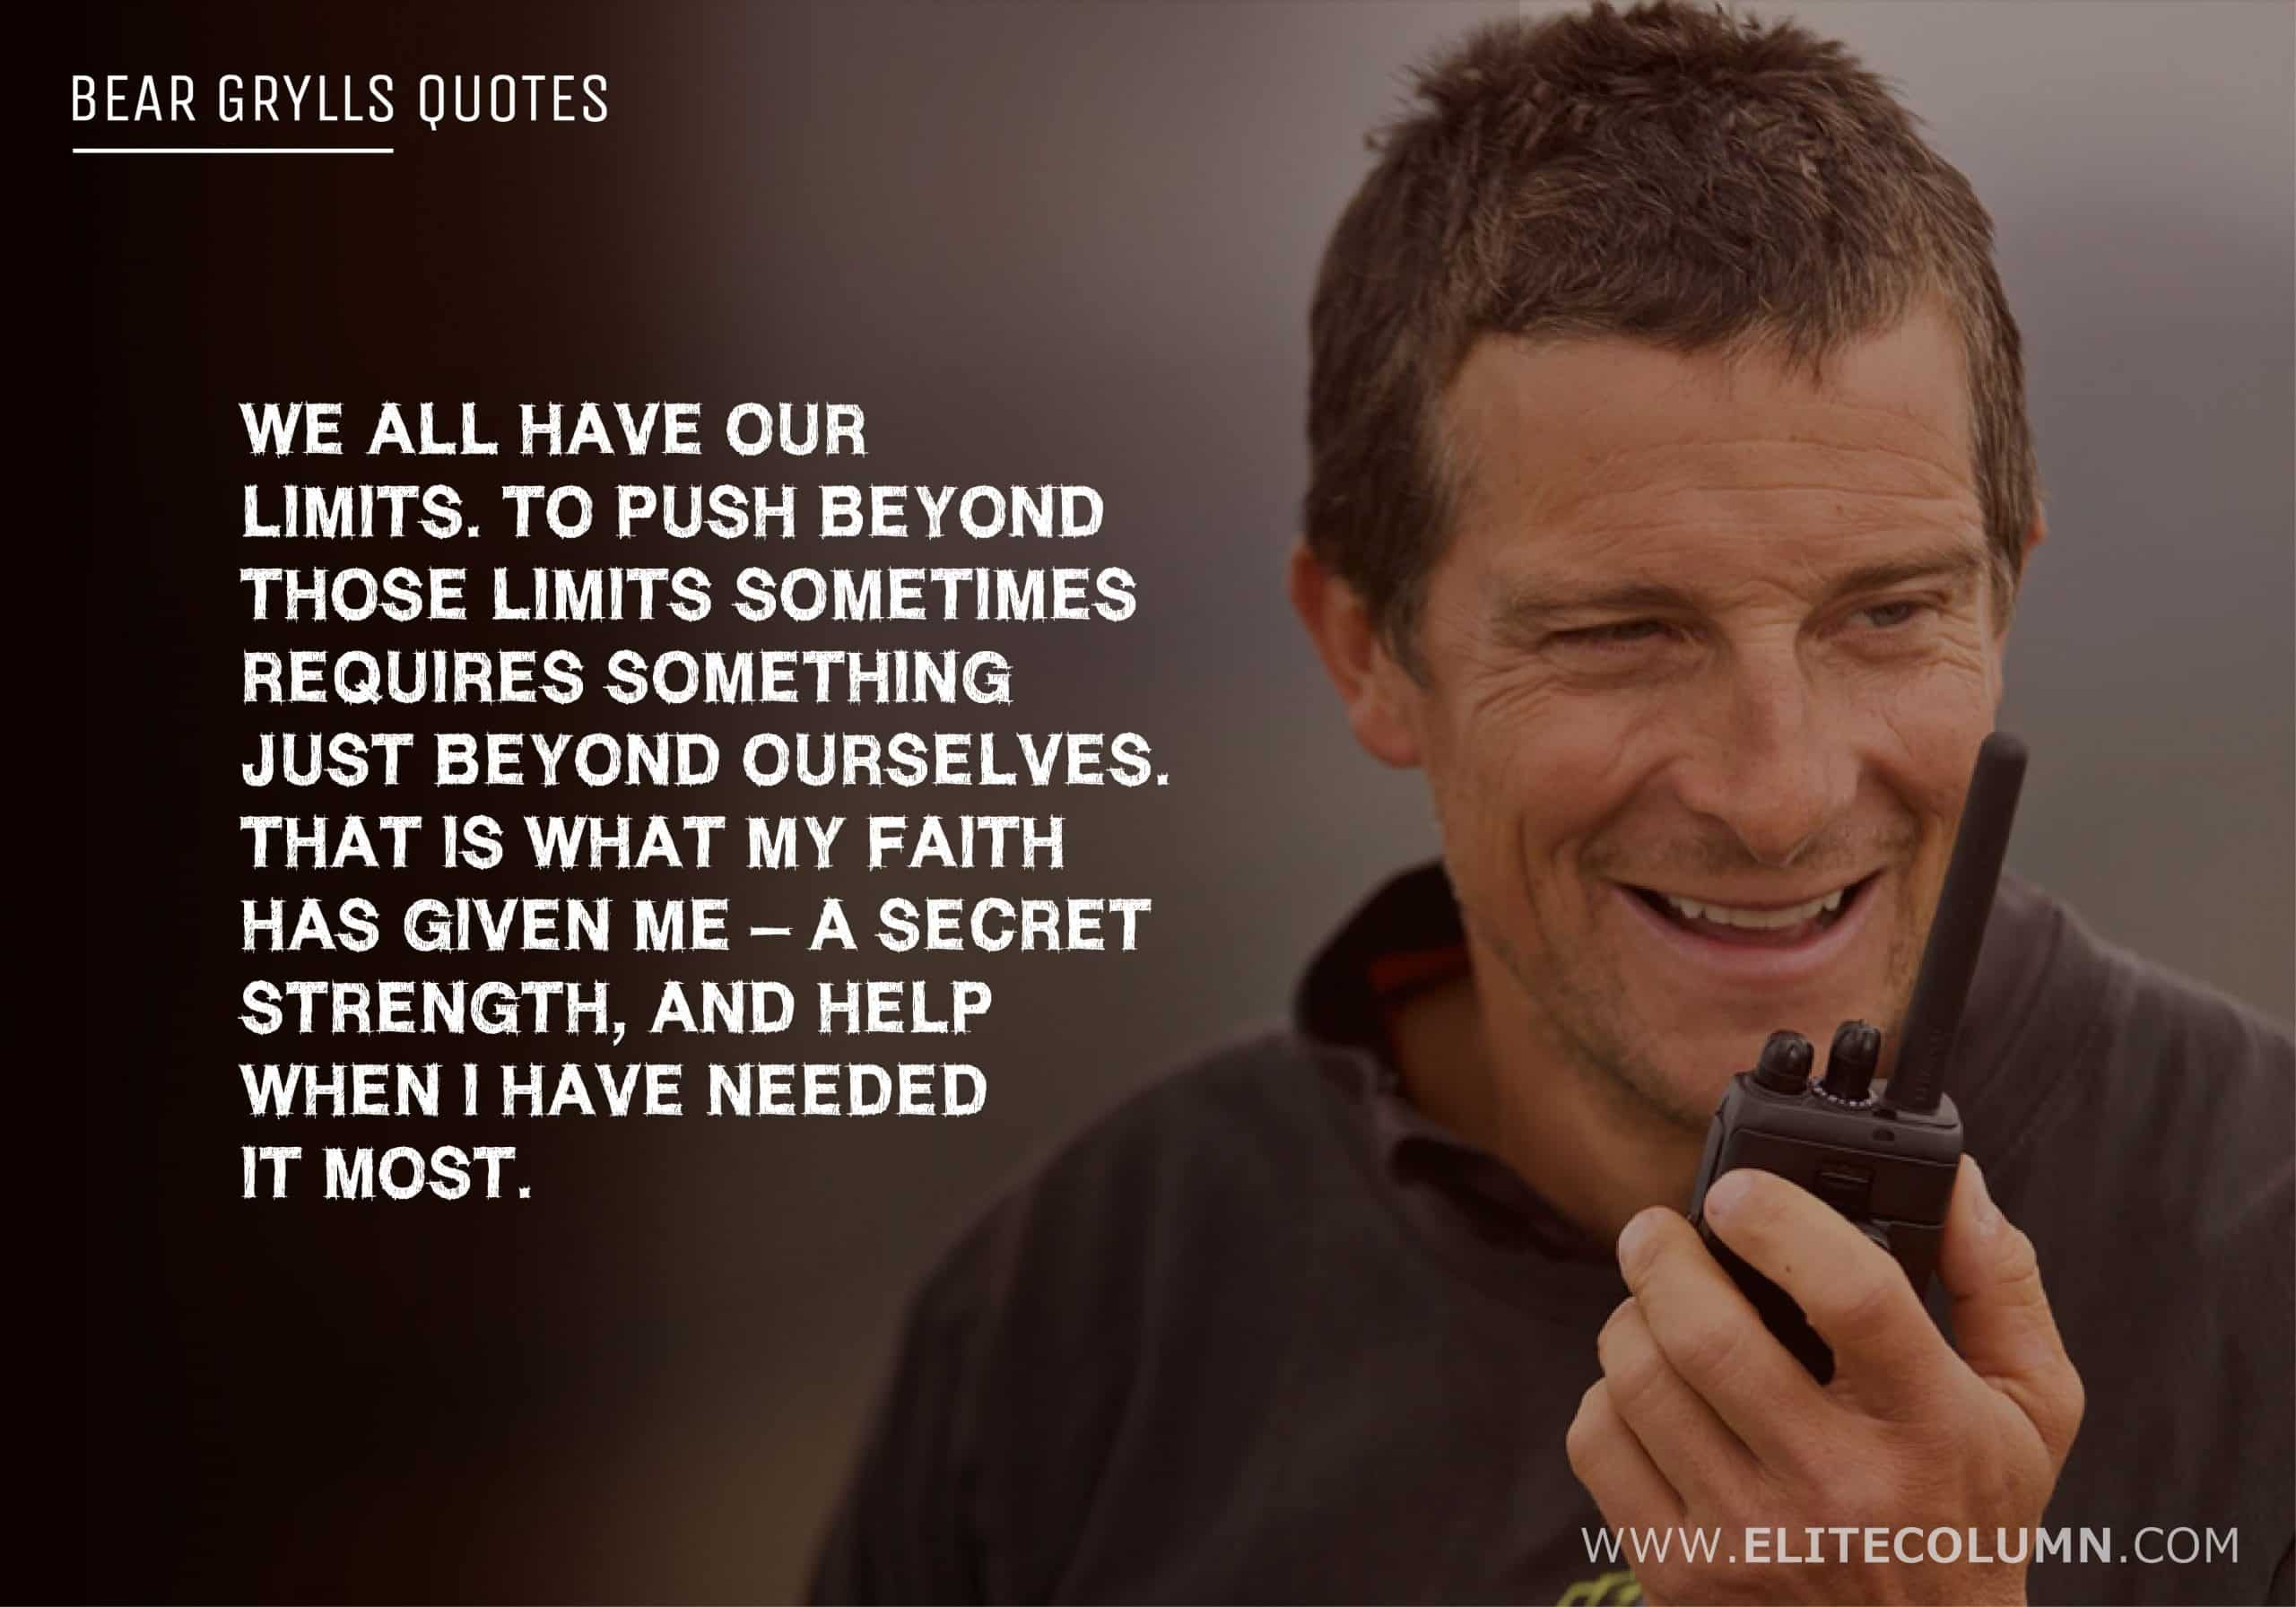 Bear Grylls Quotes (9)